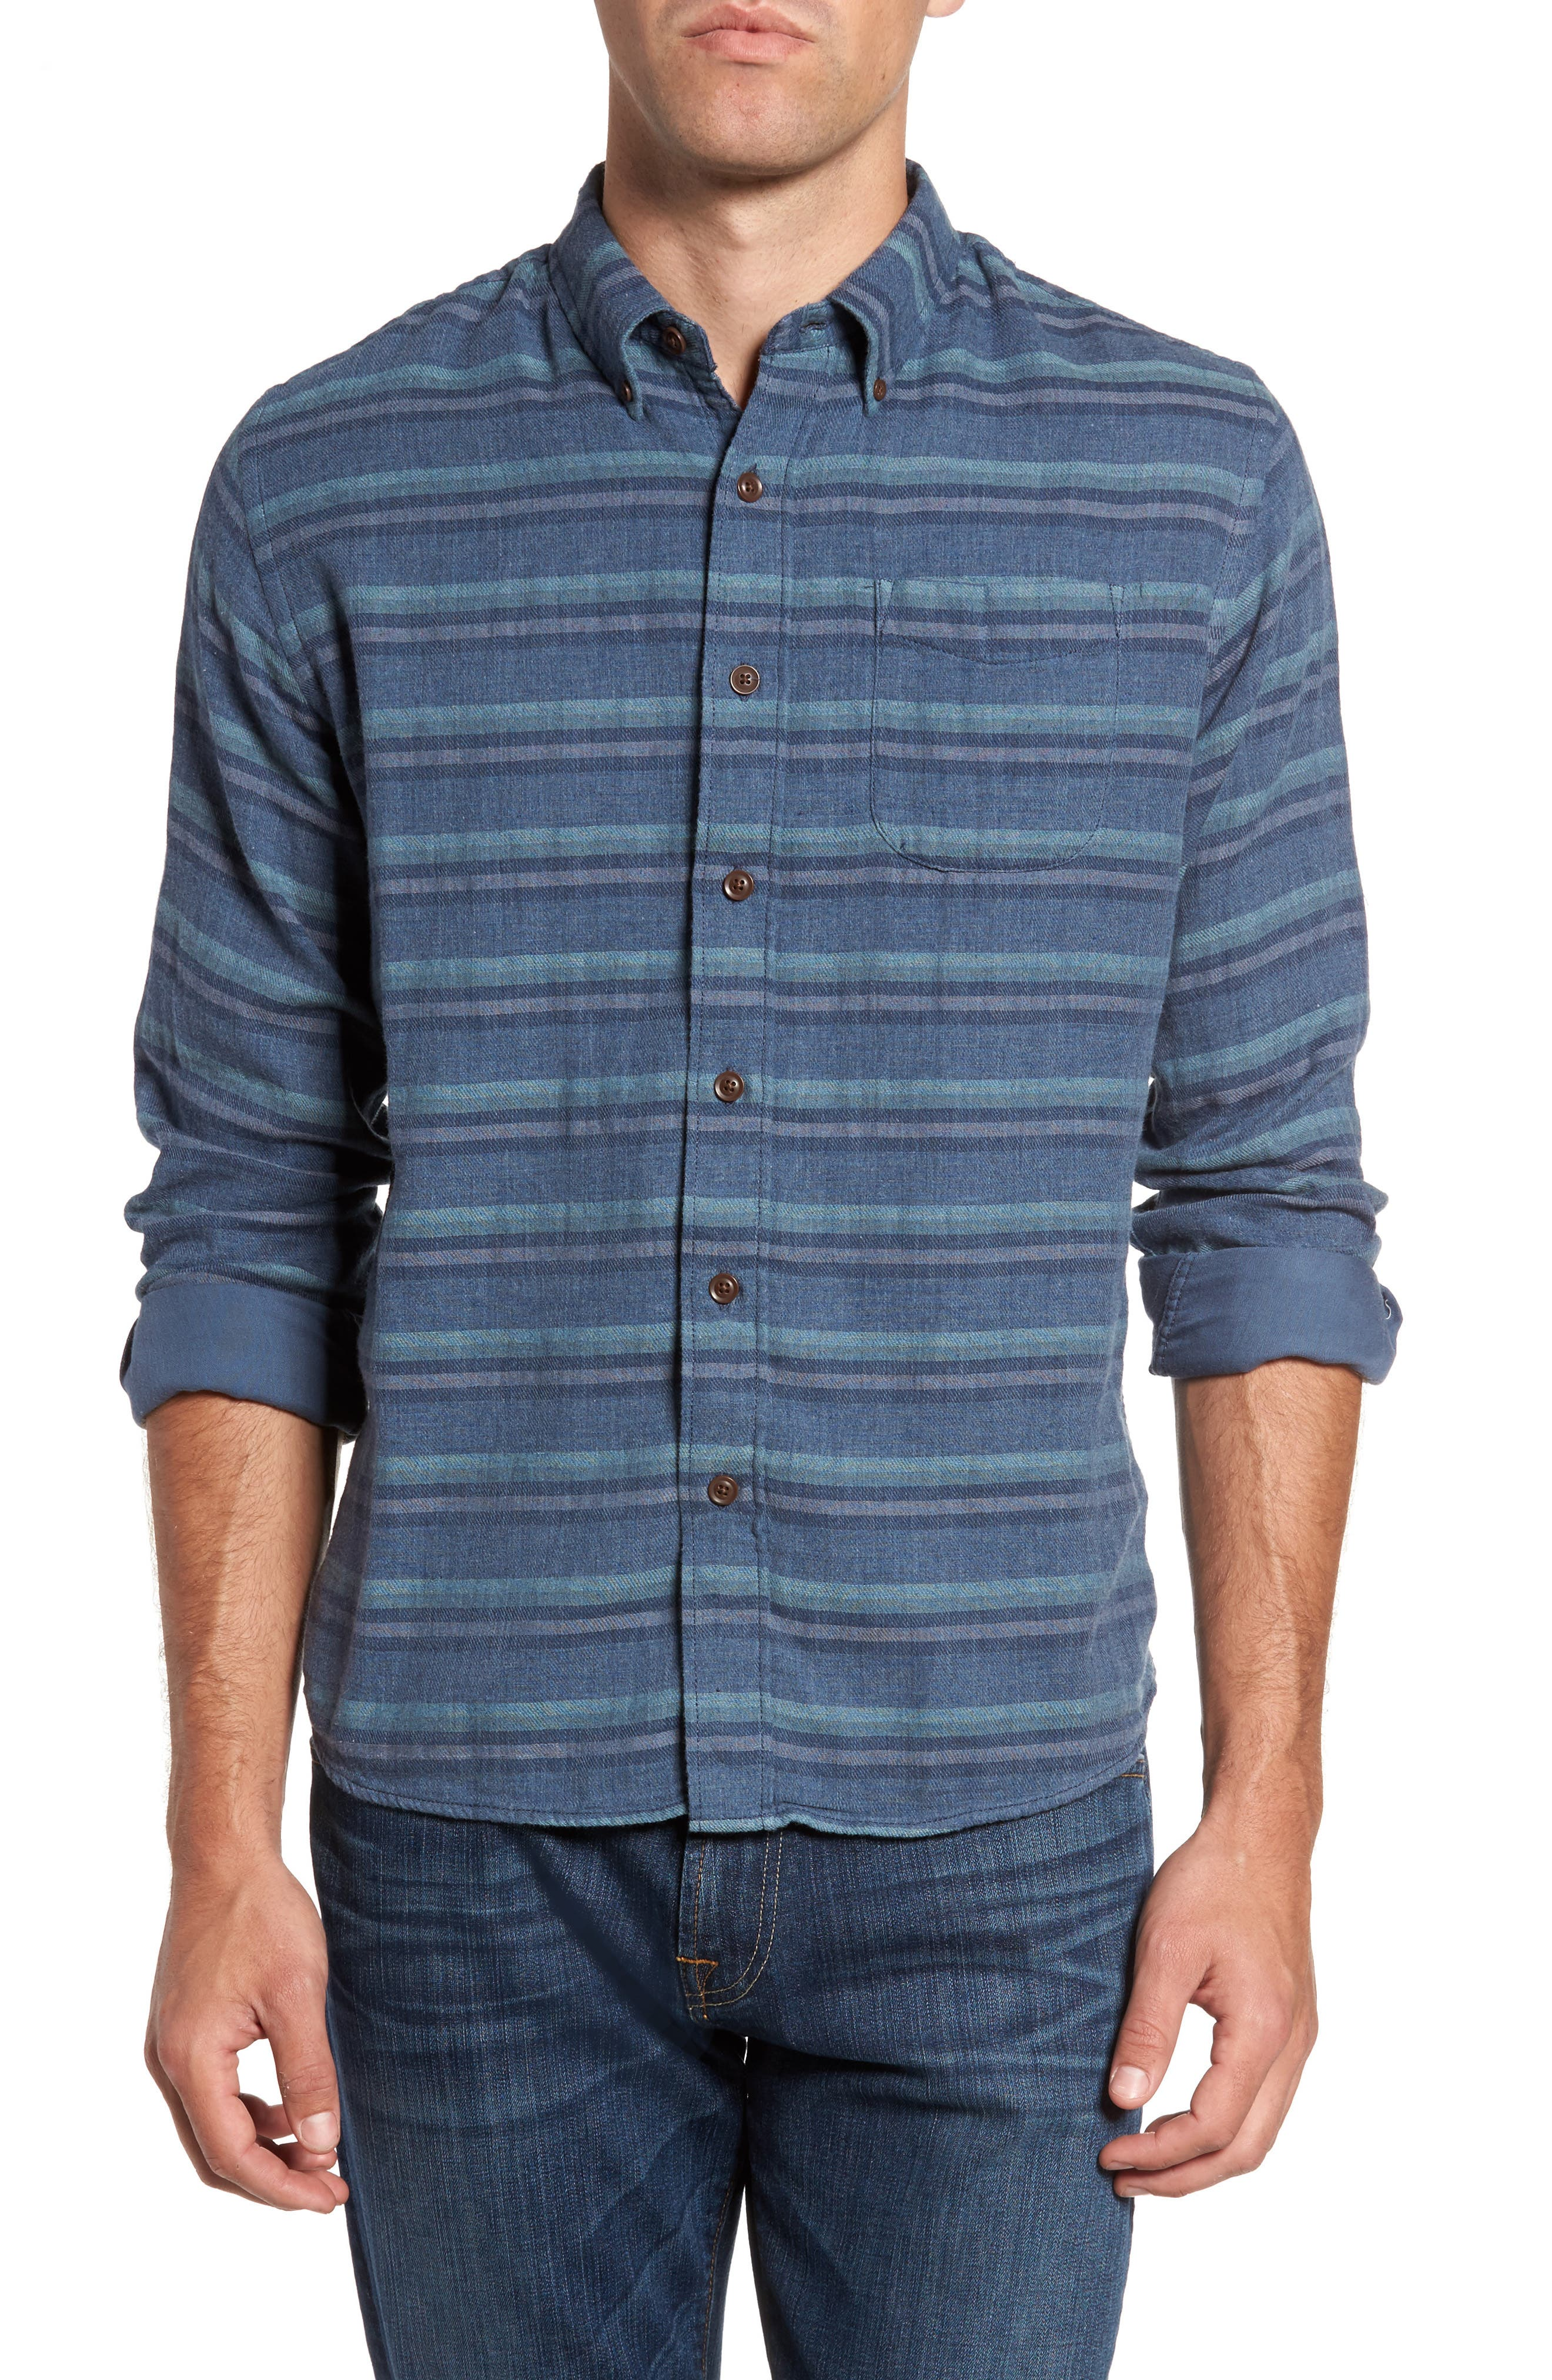 Alternate Image 1 Selected - Grayers Harcourt Modern Fit Double Cloth Striped Sport Shirt